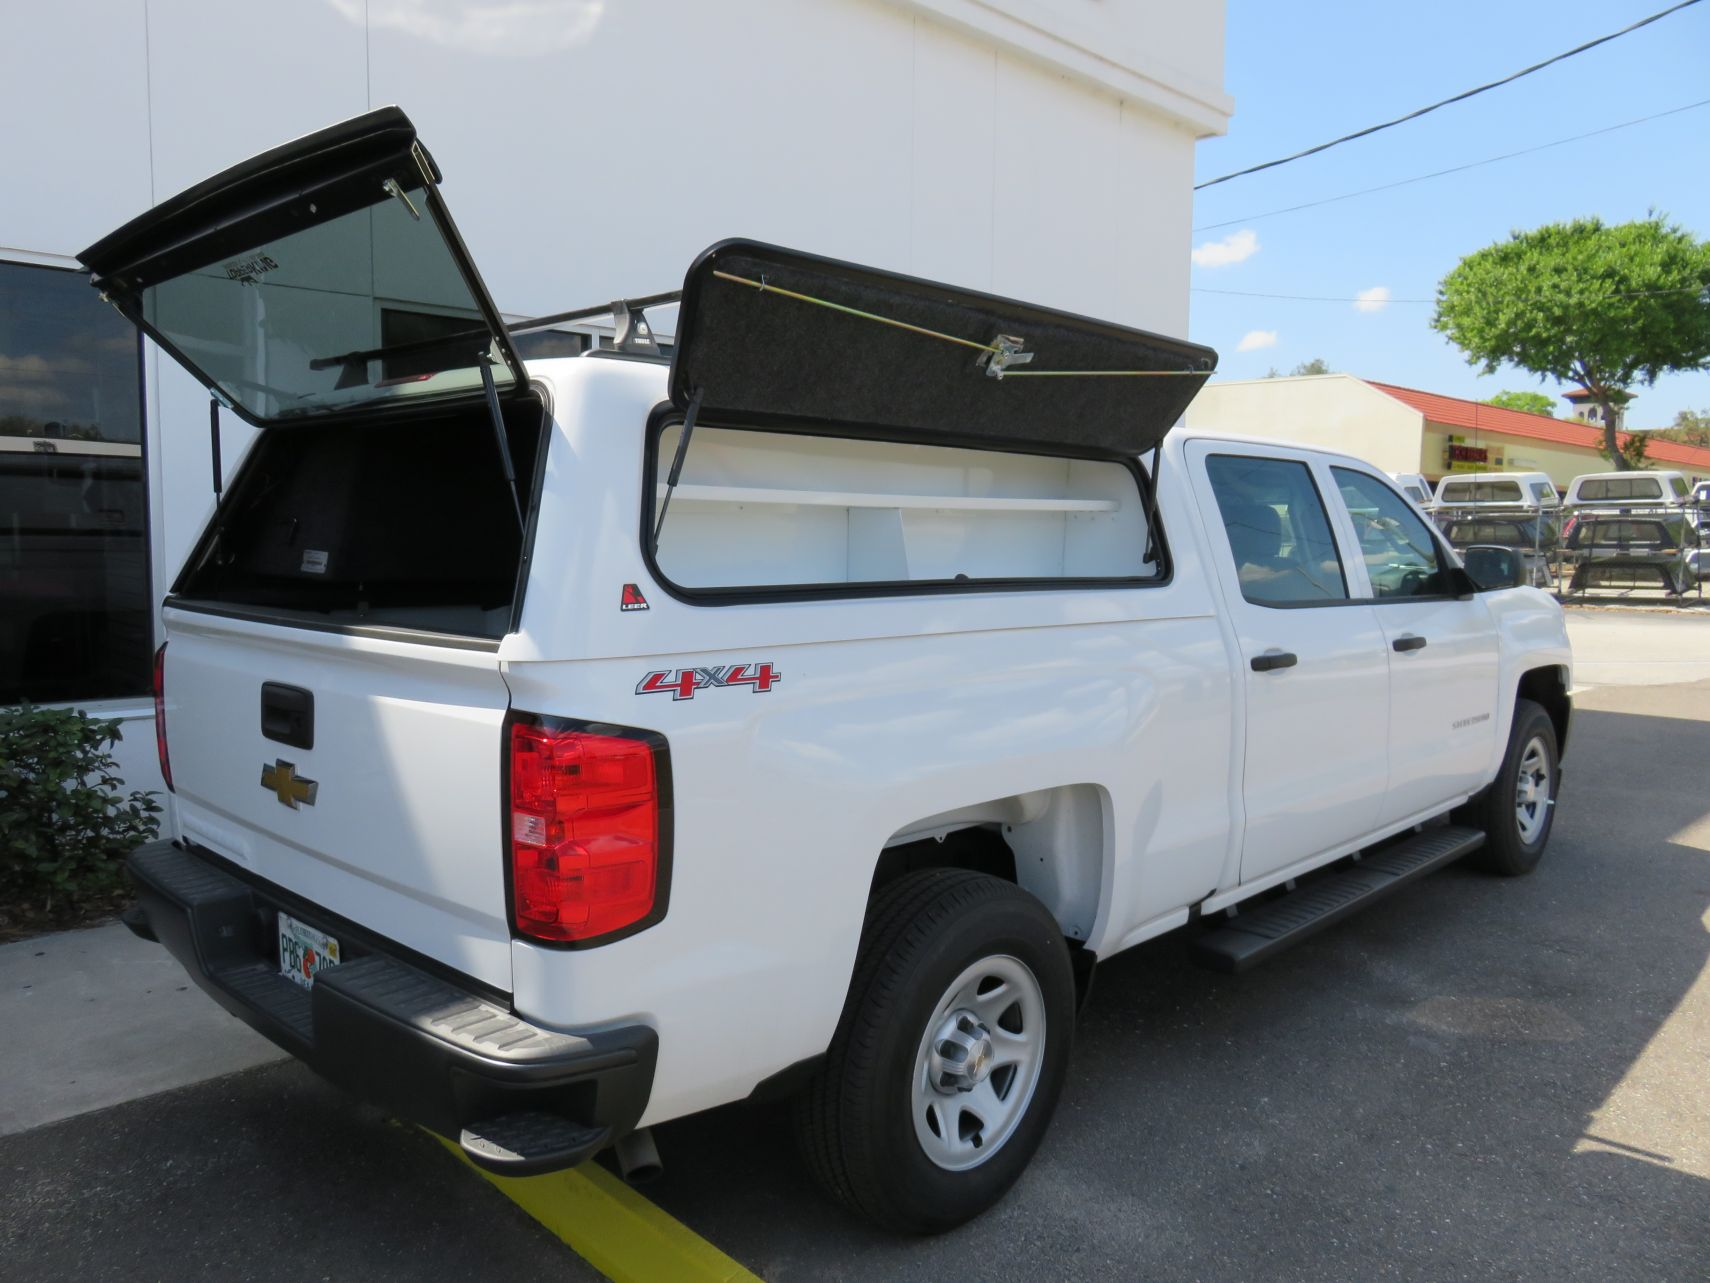 2019 Chevy Silverado LEER 100RCC, Nerf Bars, Roof Racks, Side Access, Tool Box by TopperKING Brandon 813-689-2449 or Clearwater 727-530-9066.